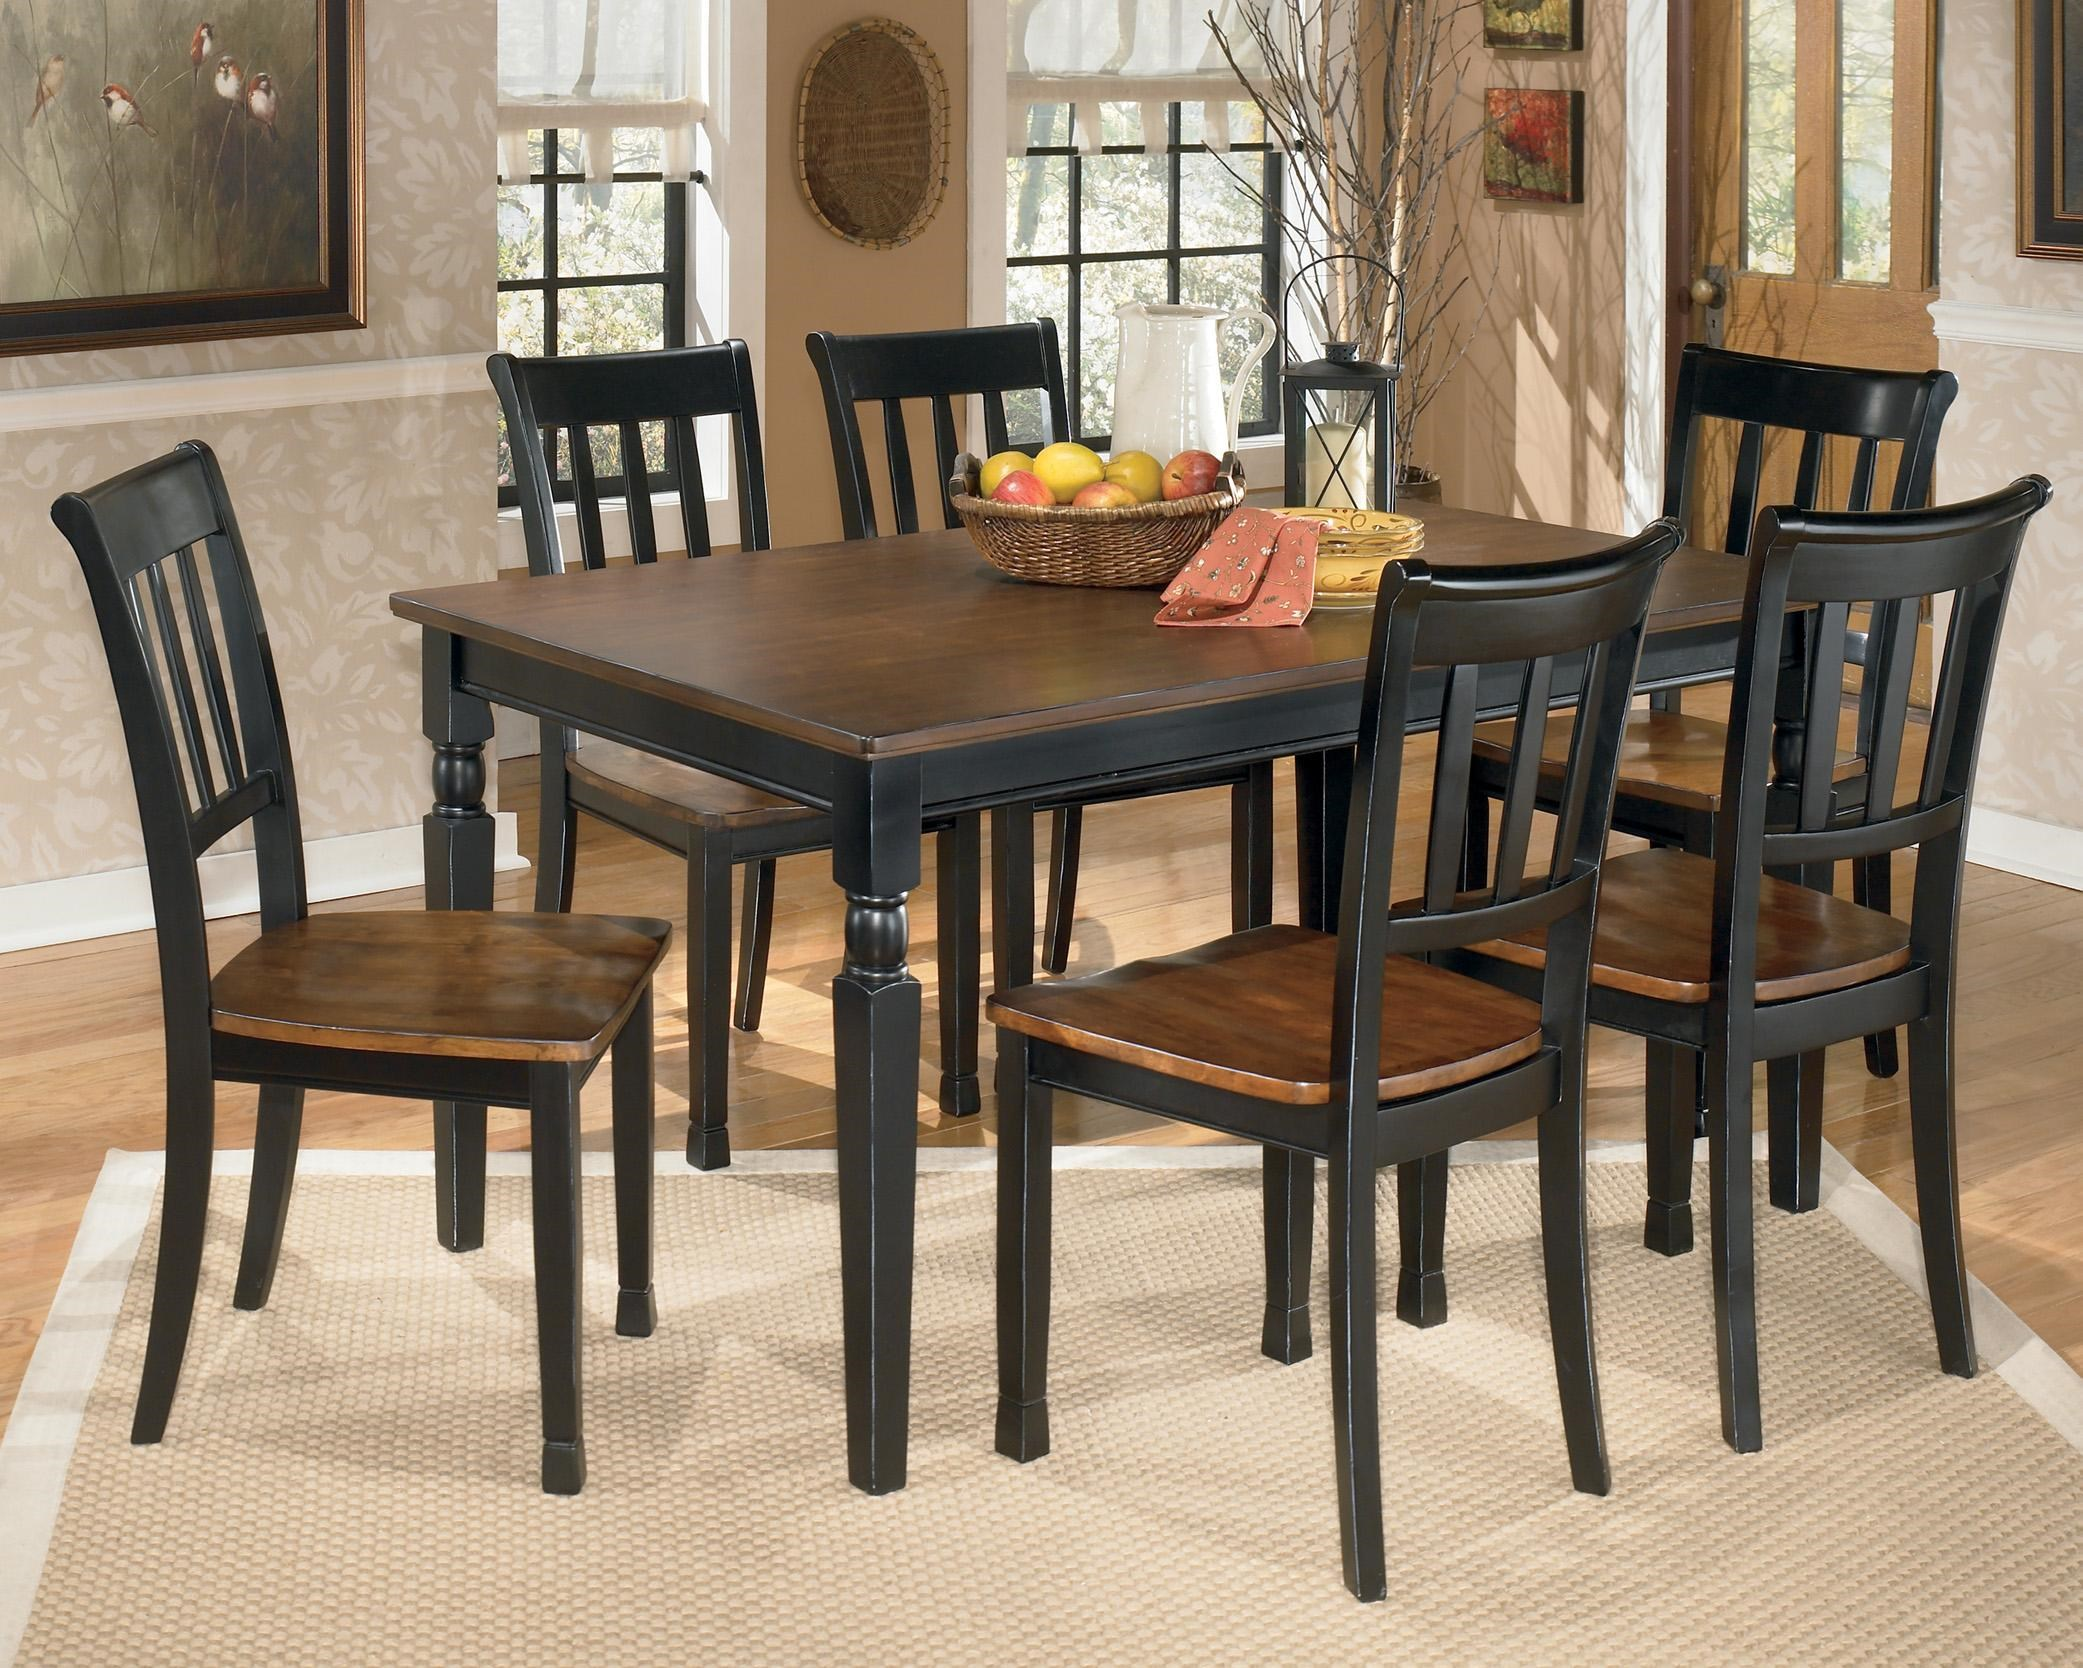 Signature Design by Ashley Owingsville -Piece Rectangular Dining